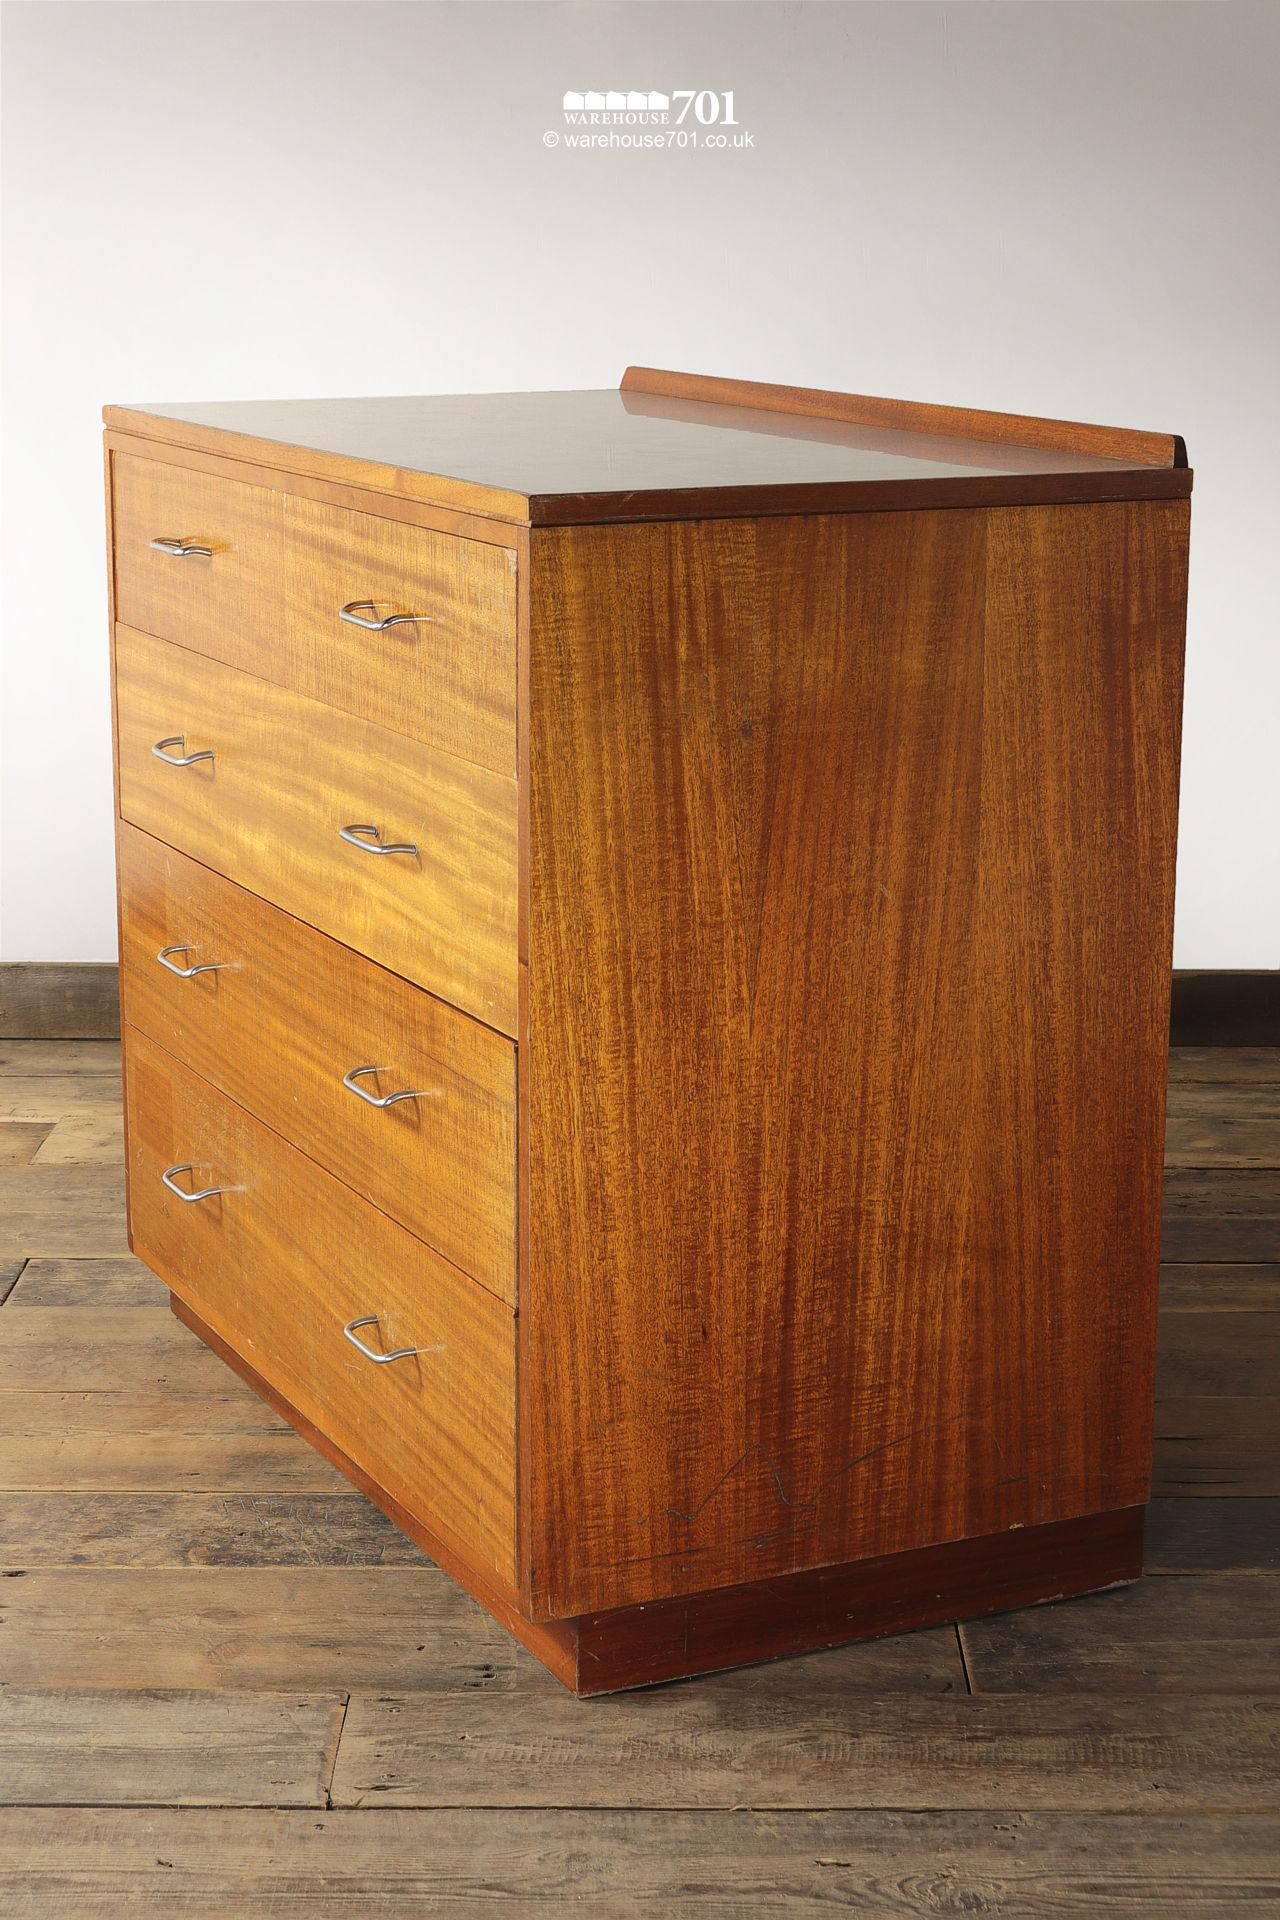 Authentic MOD Four-Tier Chest of Drawers #7